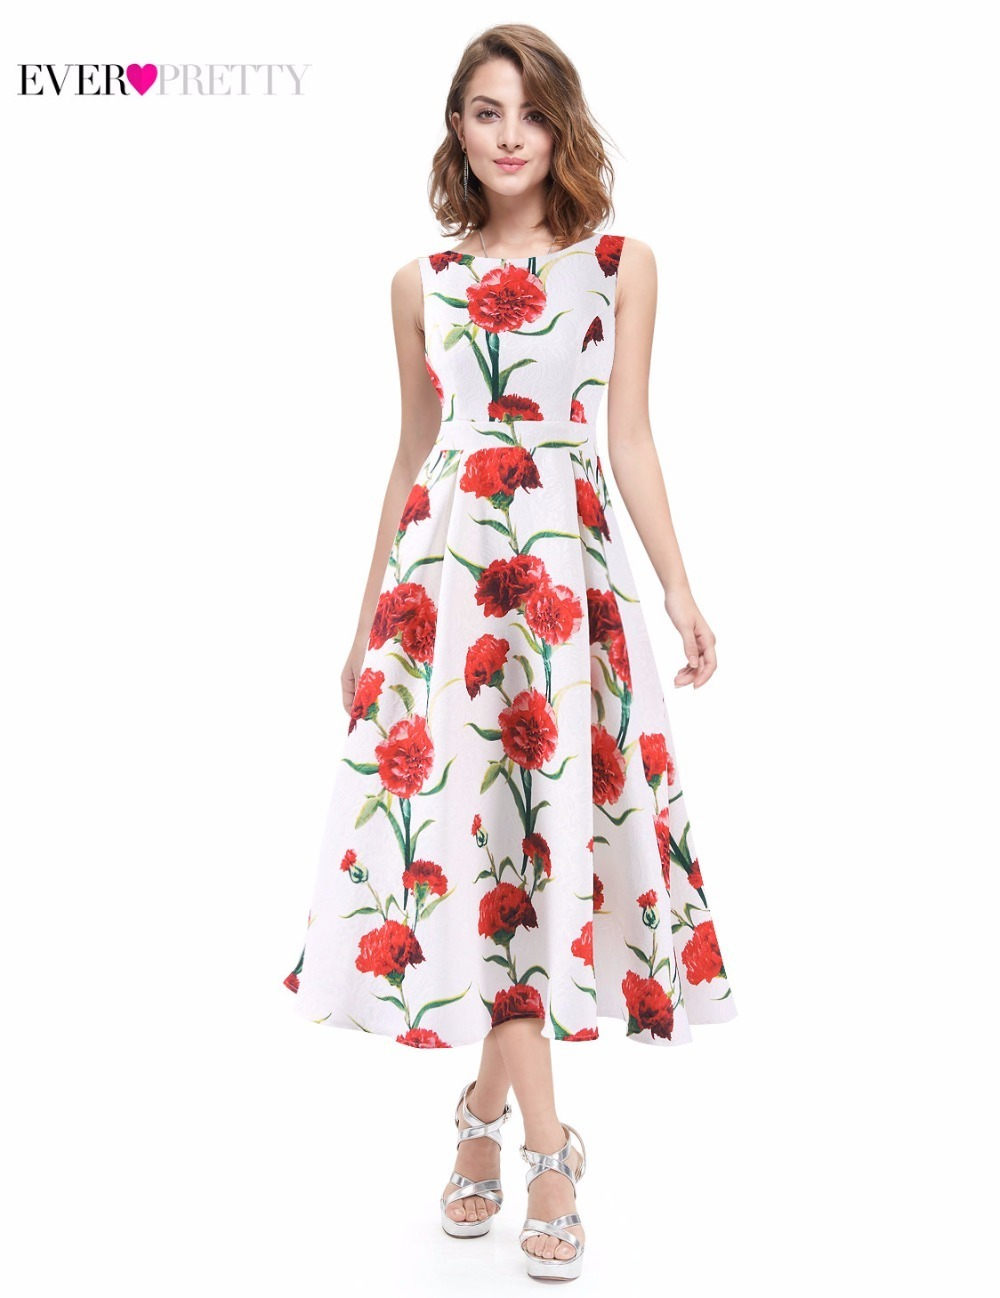 Floral Print Prom Dresses Ever Pretty A-Line O-Neck Sleeveless Elegant Formal Party Dresses Summer Beach Dresses Noble Weiss